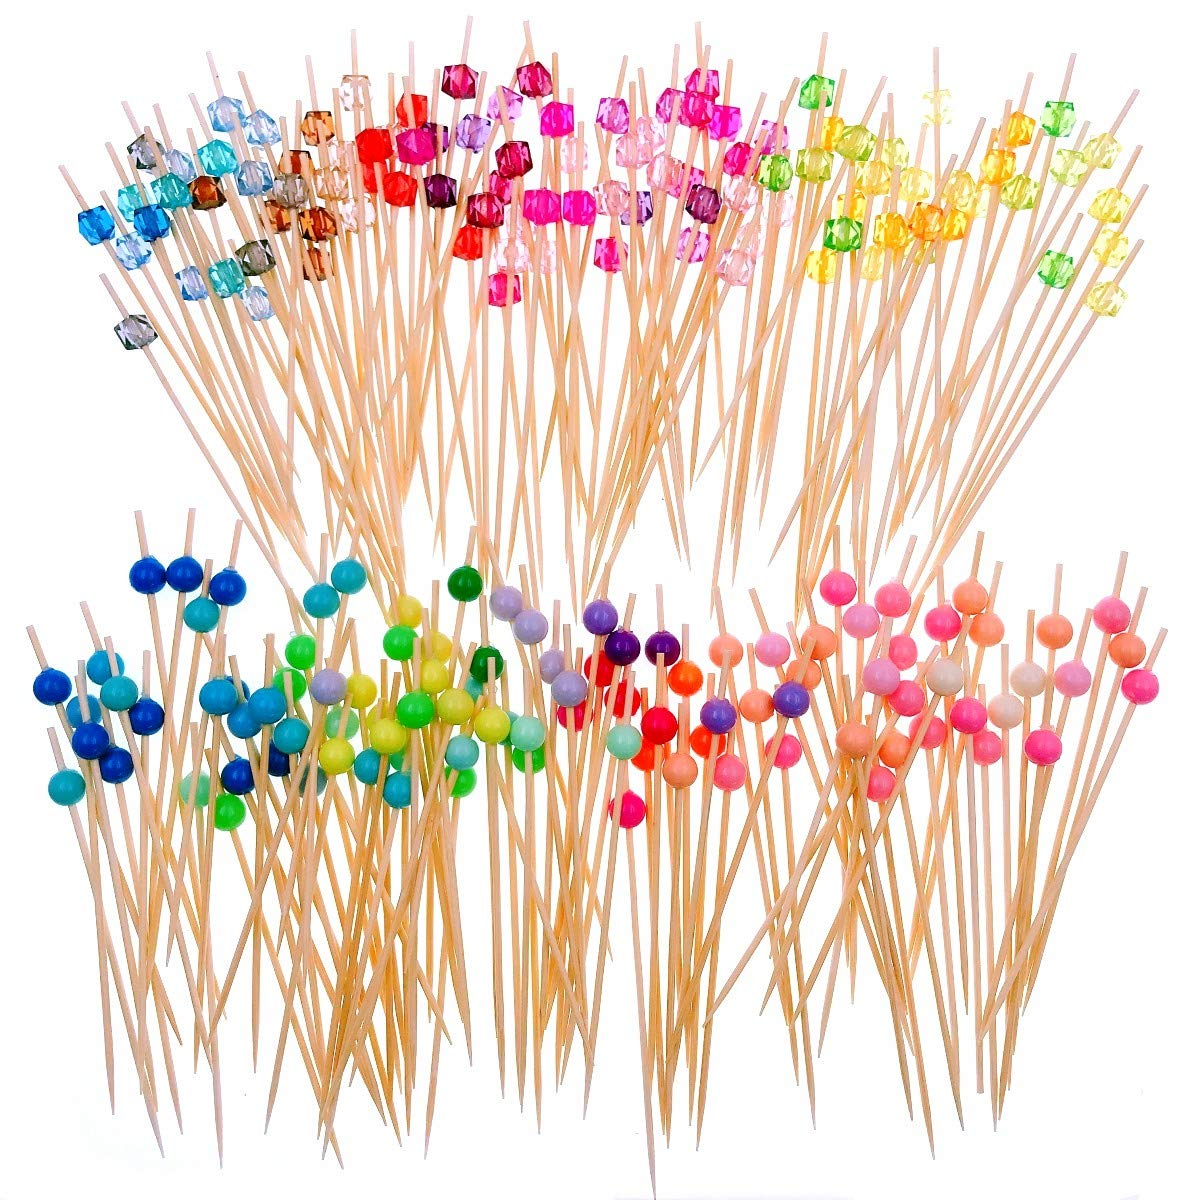 JZK 200 Bamboo Wooden Cocktail Stick with Colourful Acrylic Bead 12cm Long Toothpick for Party Nibbles Tapas Sandwich canapes appetiser Fruit Skewer